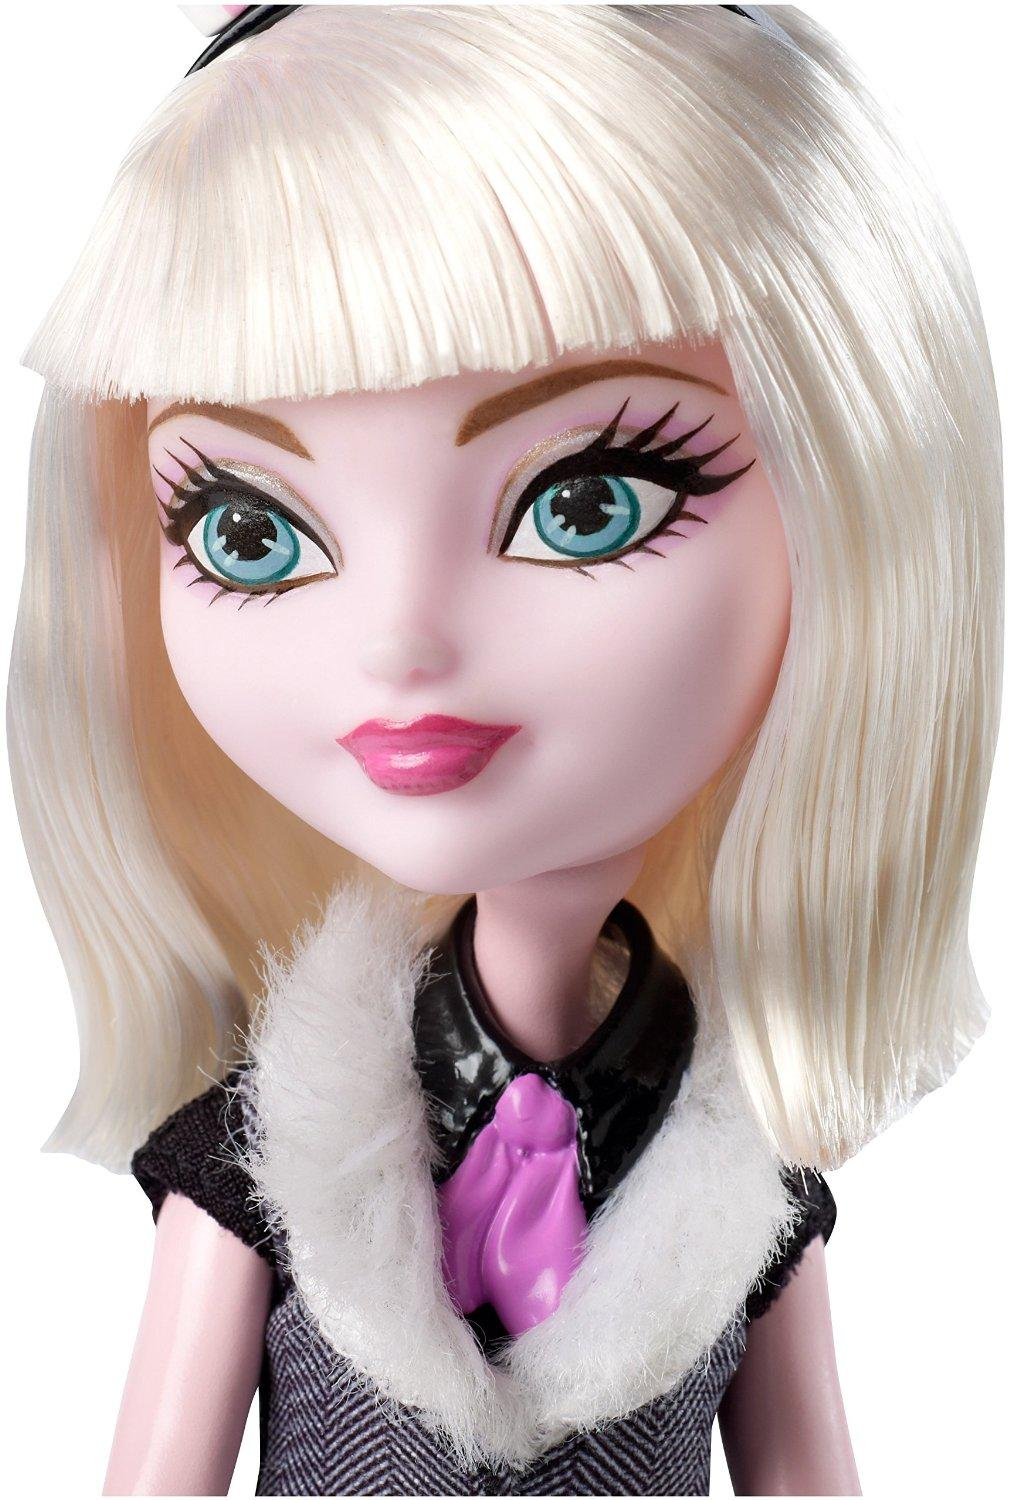 If Ever You Need A Reason To Get Out Of A Broken Down Car: Amazon.com: Ever After High Bunny Blanc Doll: Toys & Games